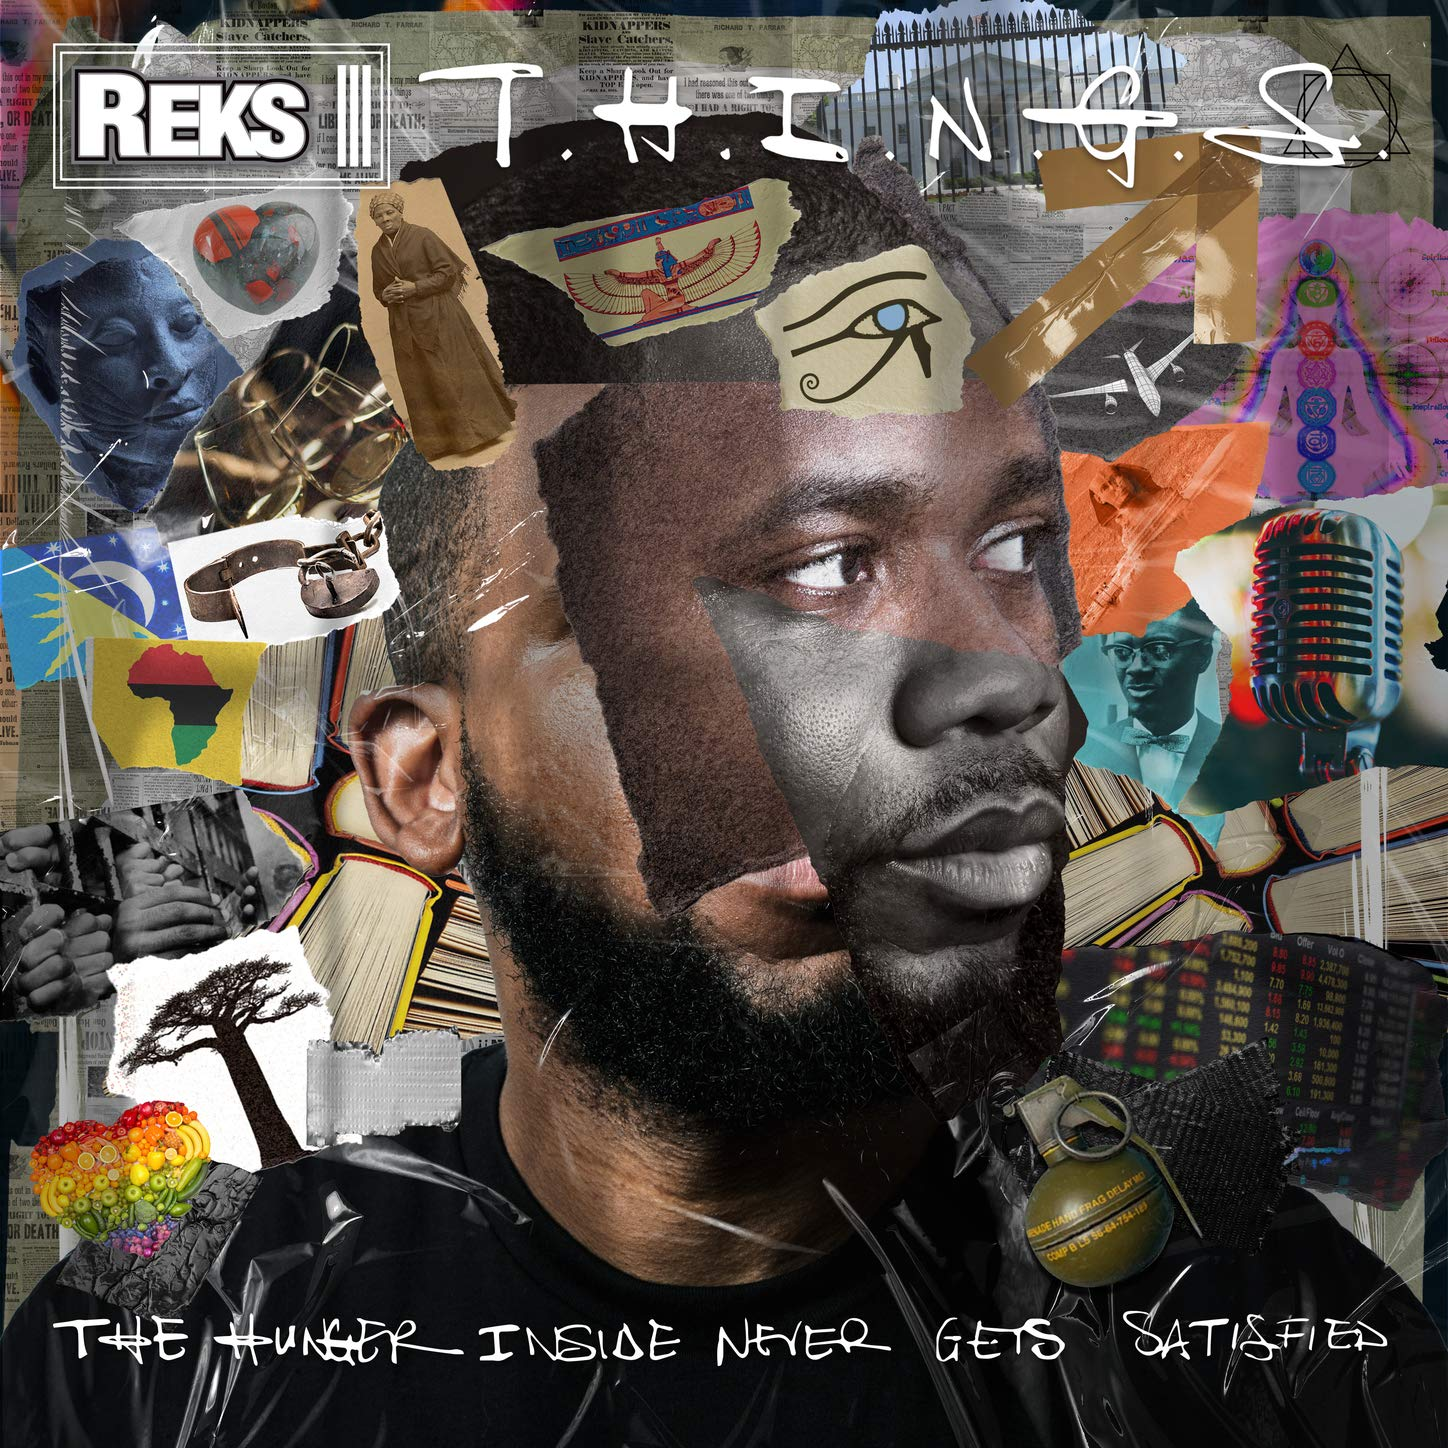 Reks-T.H.I.N.G.S. The Hunger Inside Never Gets Satisfied-CD-FLAC-2020-AUDiOFiLE